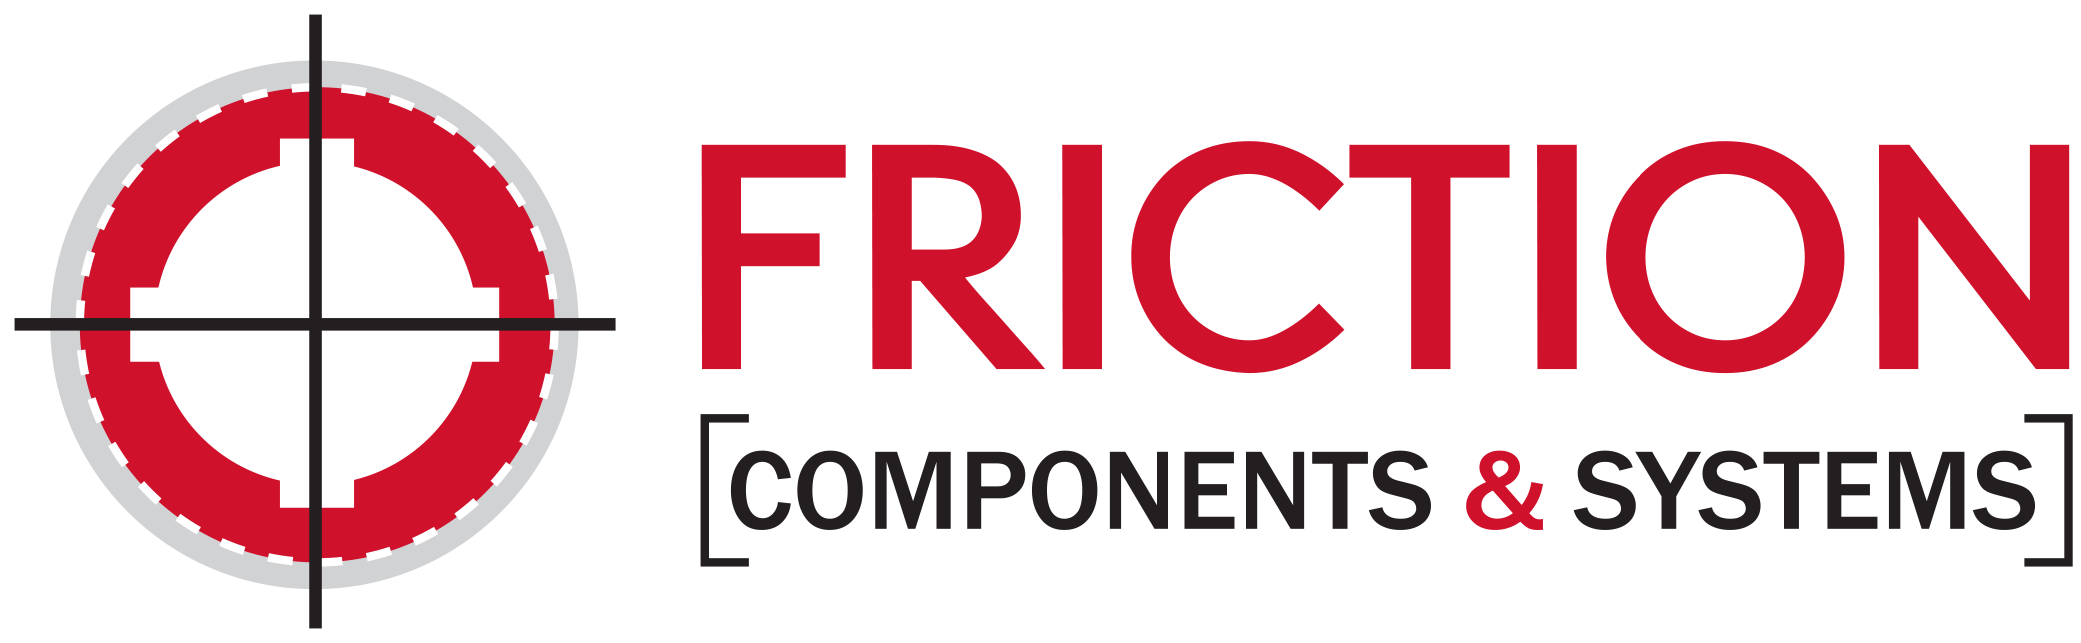 Friction Components & Systems